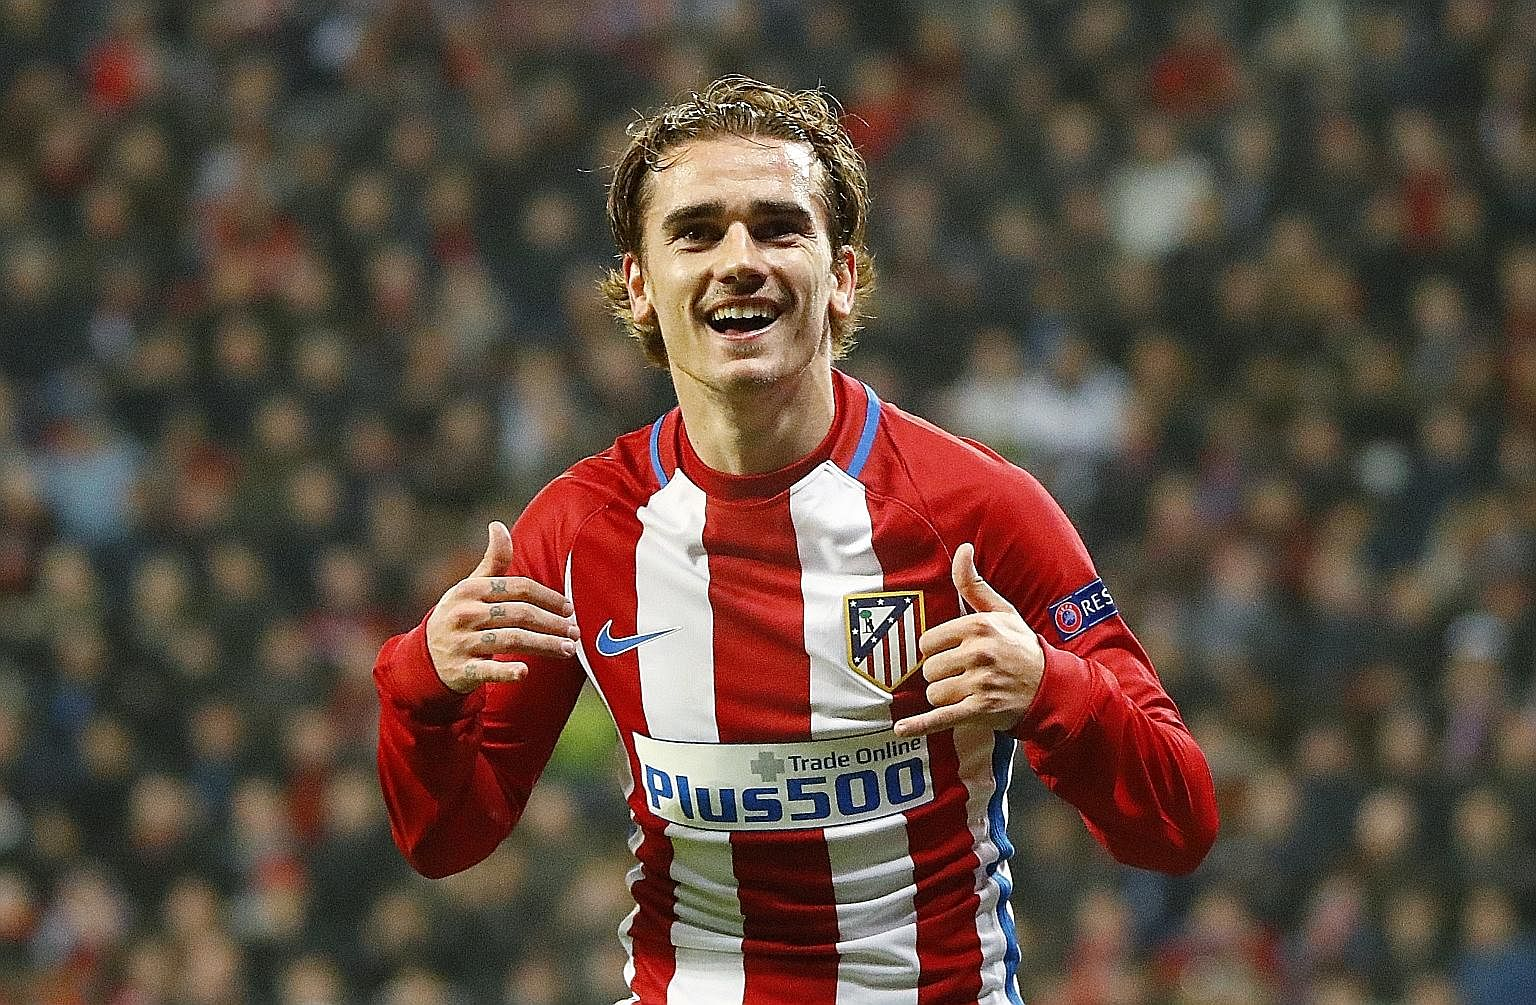 Atletico Madrid and France striker Antoine Griezmann is heavily linked with a move to Manchester United in the summer. His arrival is likely to result in United skipper Wayne Rooney leaving the English giants for China.